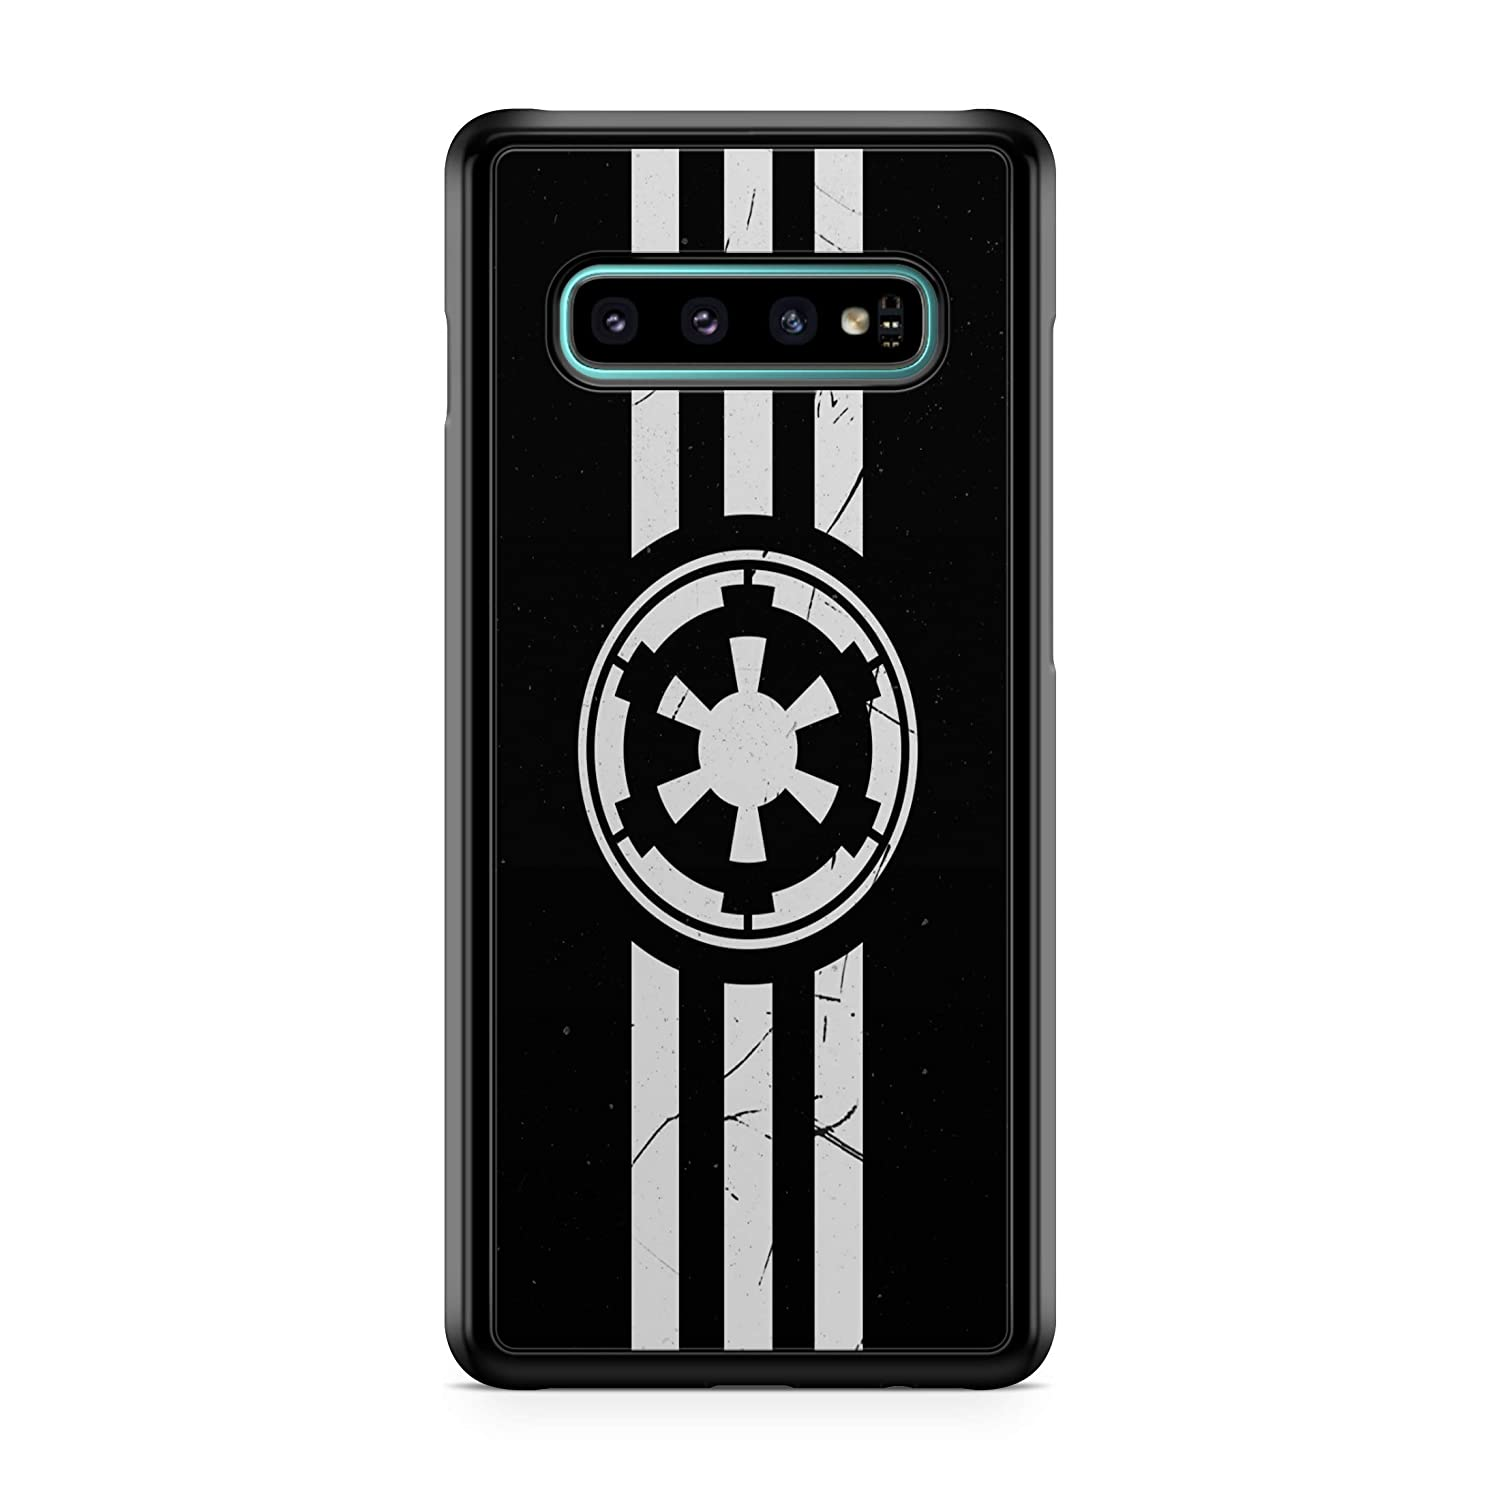 Inspired by Star Wars Samsung Galaxy S20 Ultra S10 5G Case Galaxy S20 S10 S9 S8 Plus Galactic Empire Logo Minimalistic S10e Phone Cover M27